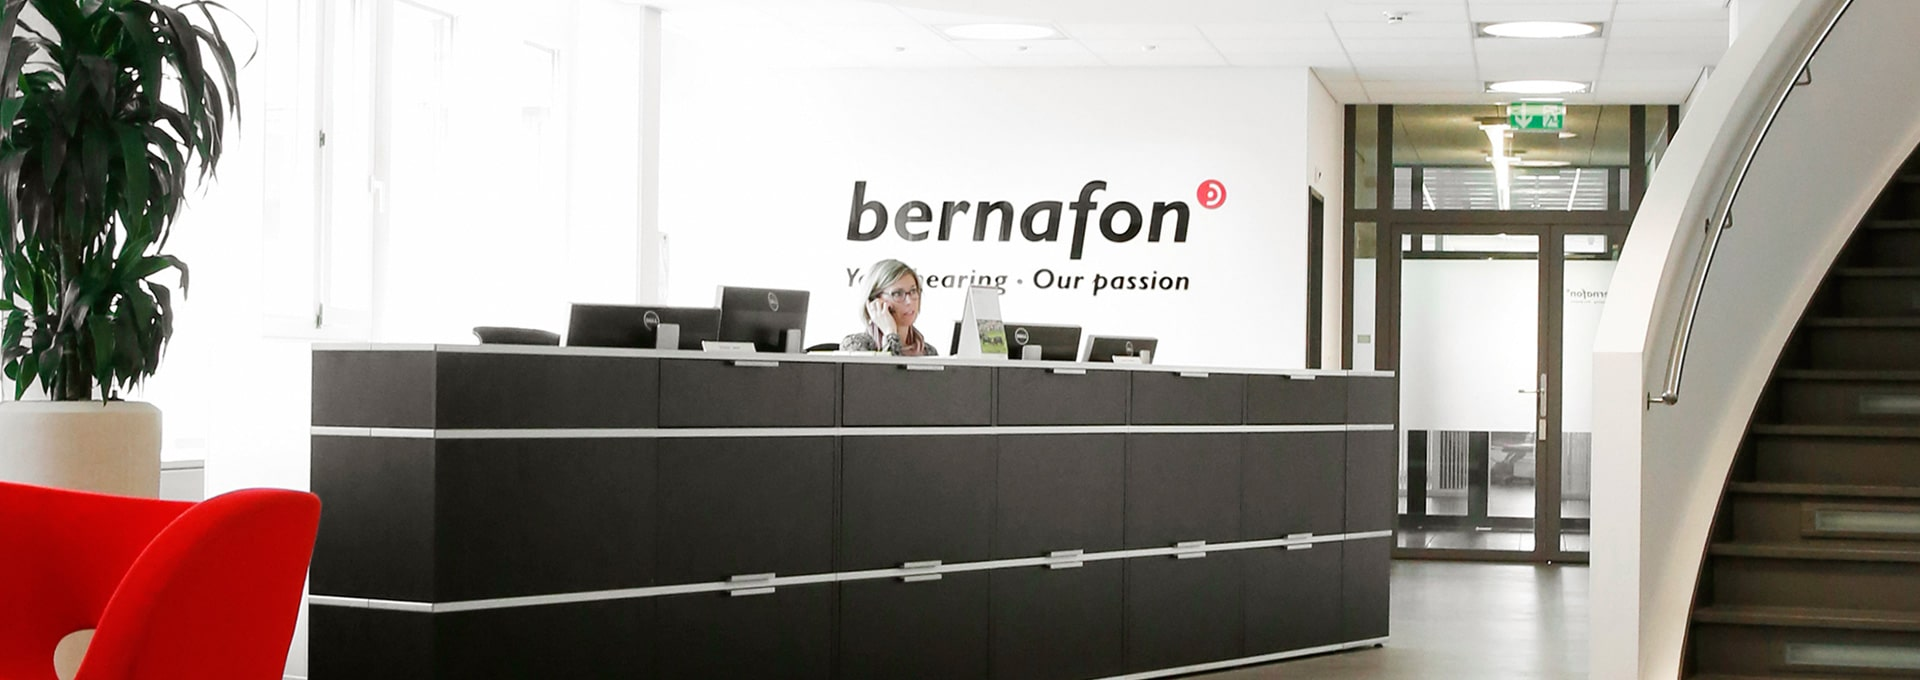 Bernafon Headquater Office Bern